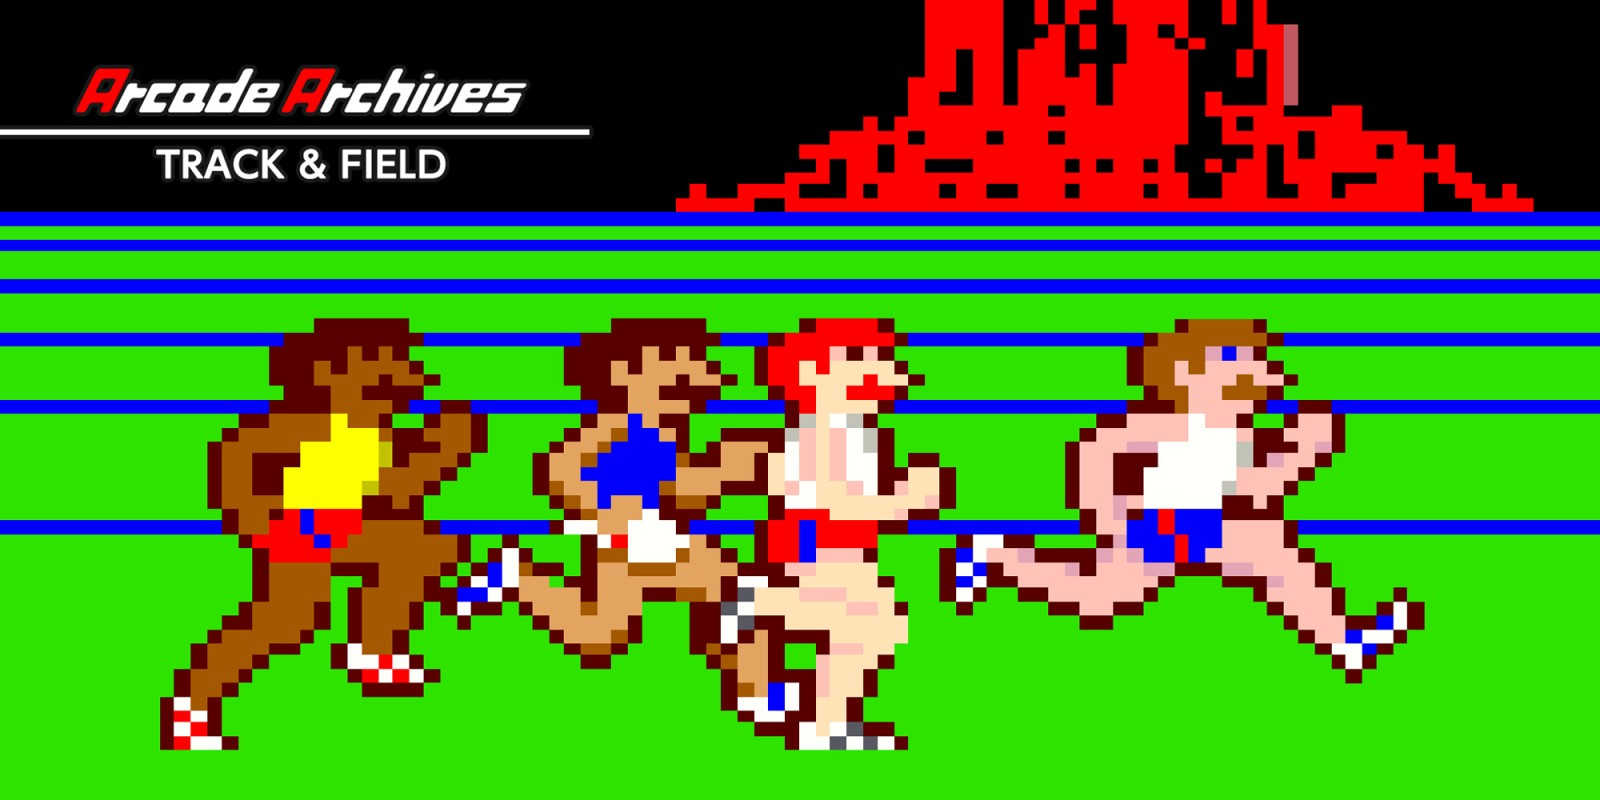 Arcade Archives TRACK & FIELD Masthead